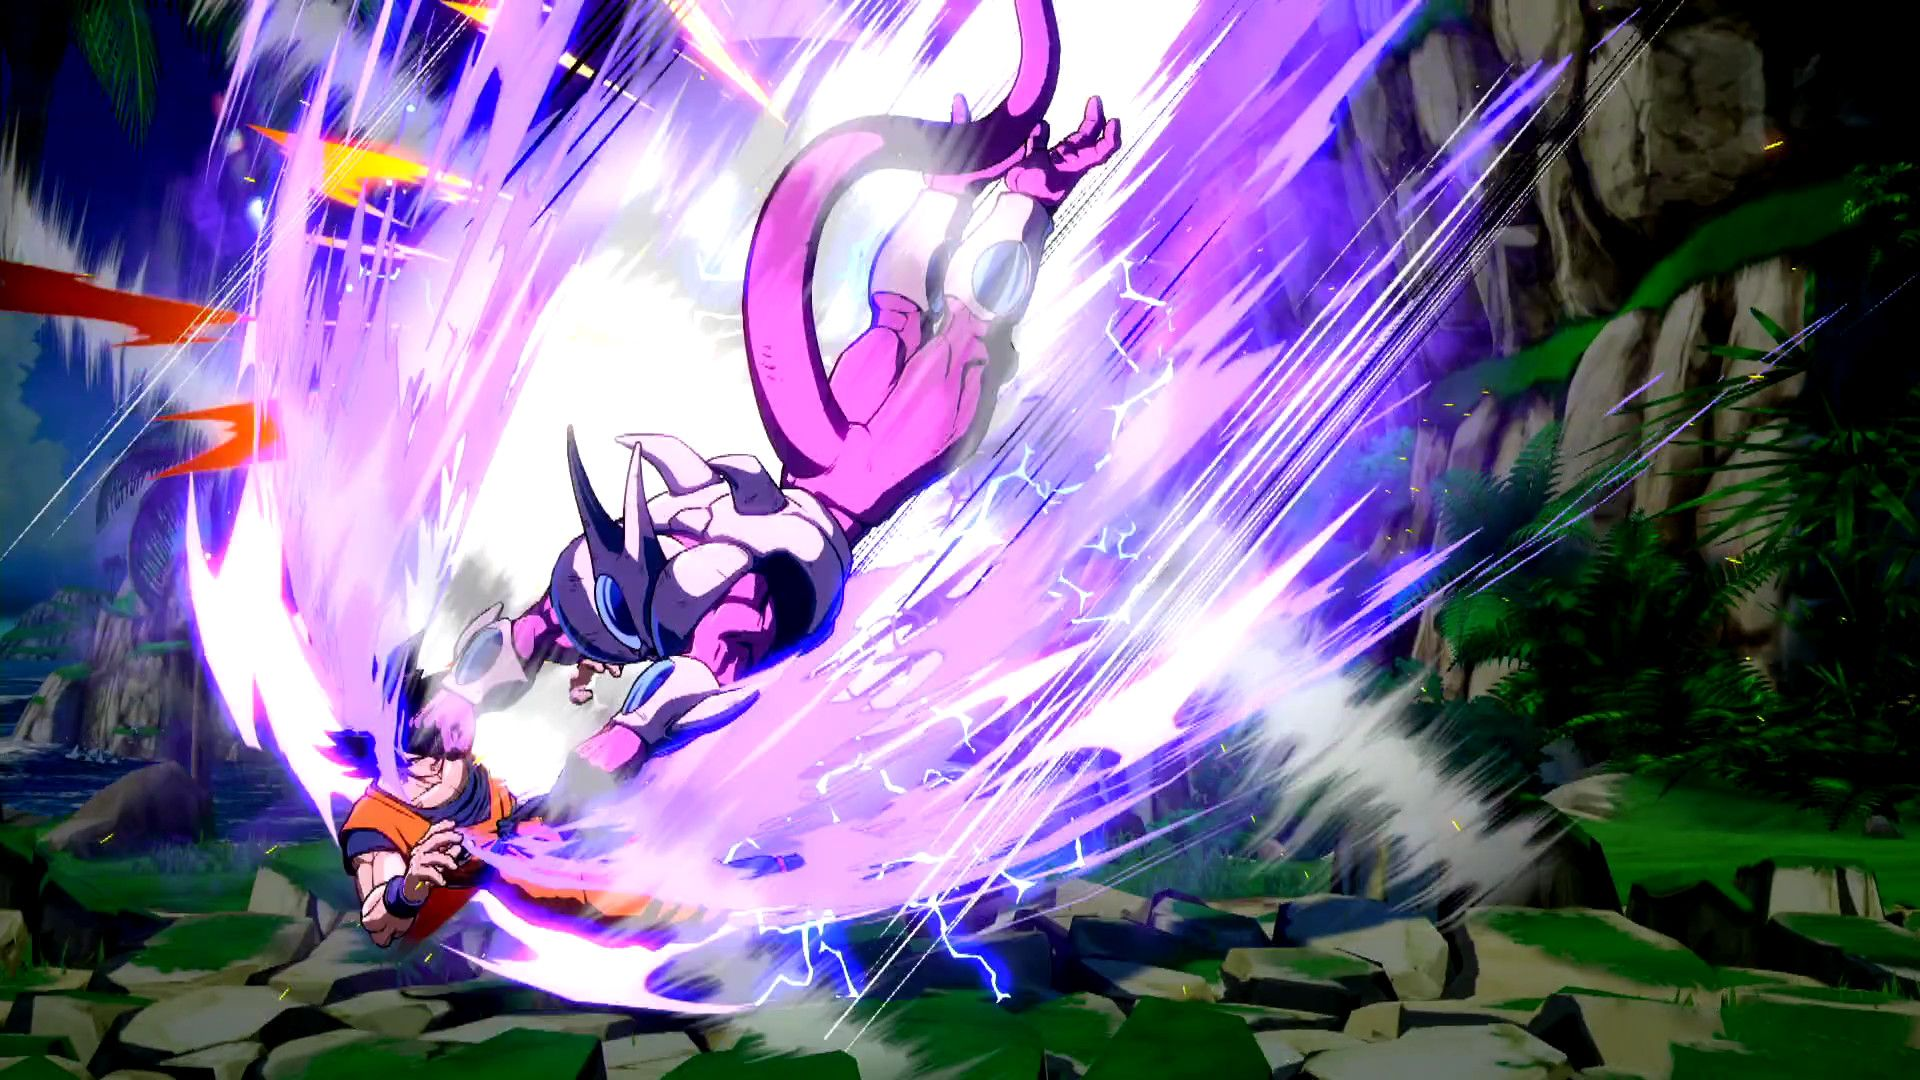 1920x1080 Dragon Ball FighterZ: Cooler (2018) promotional art - MobyGames